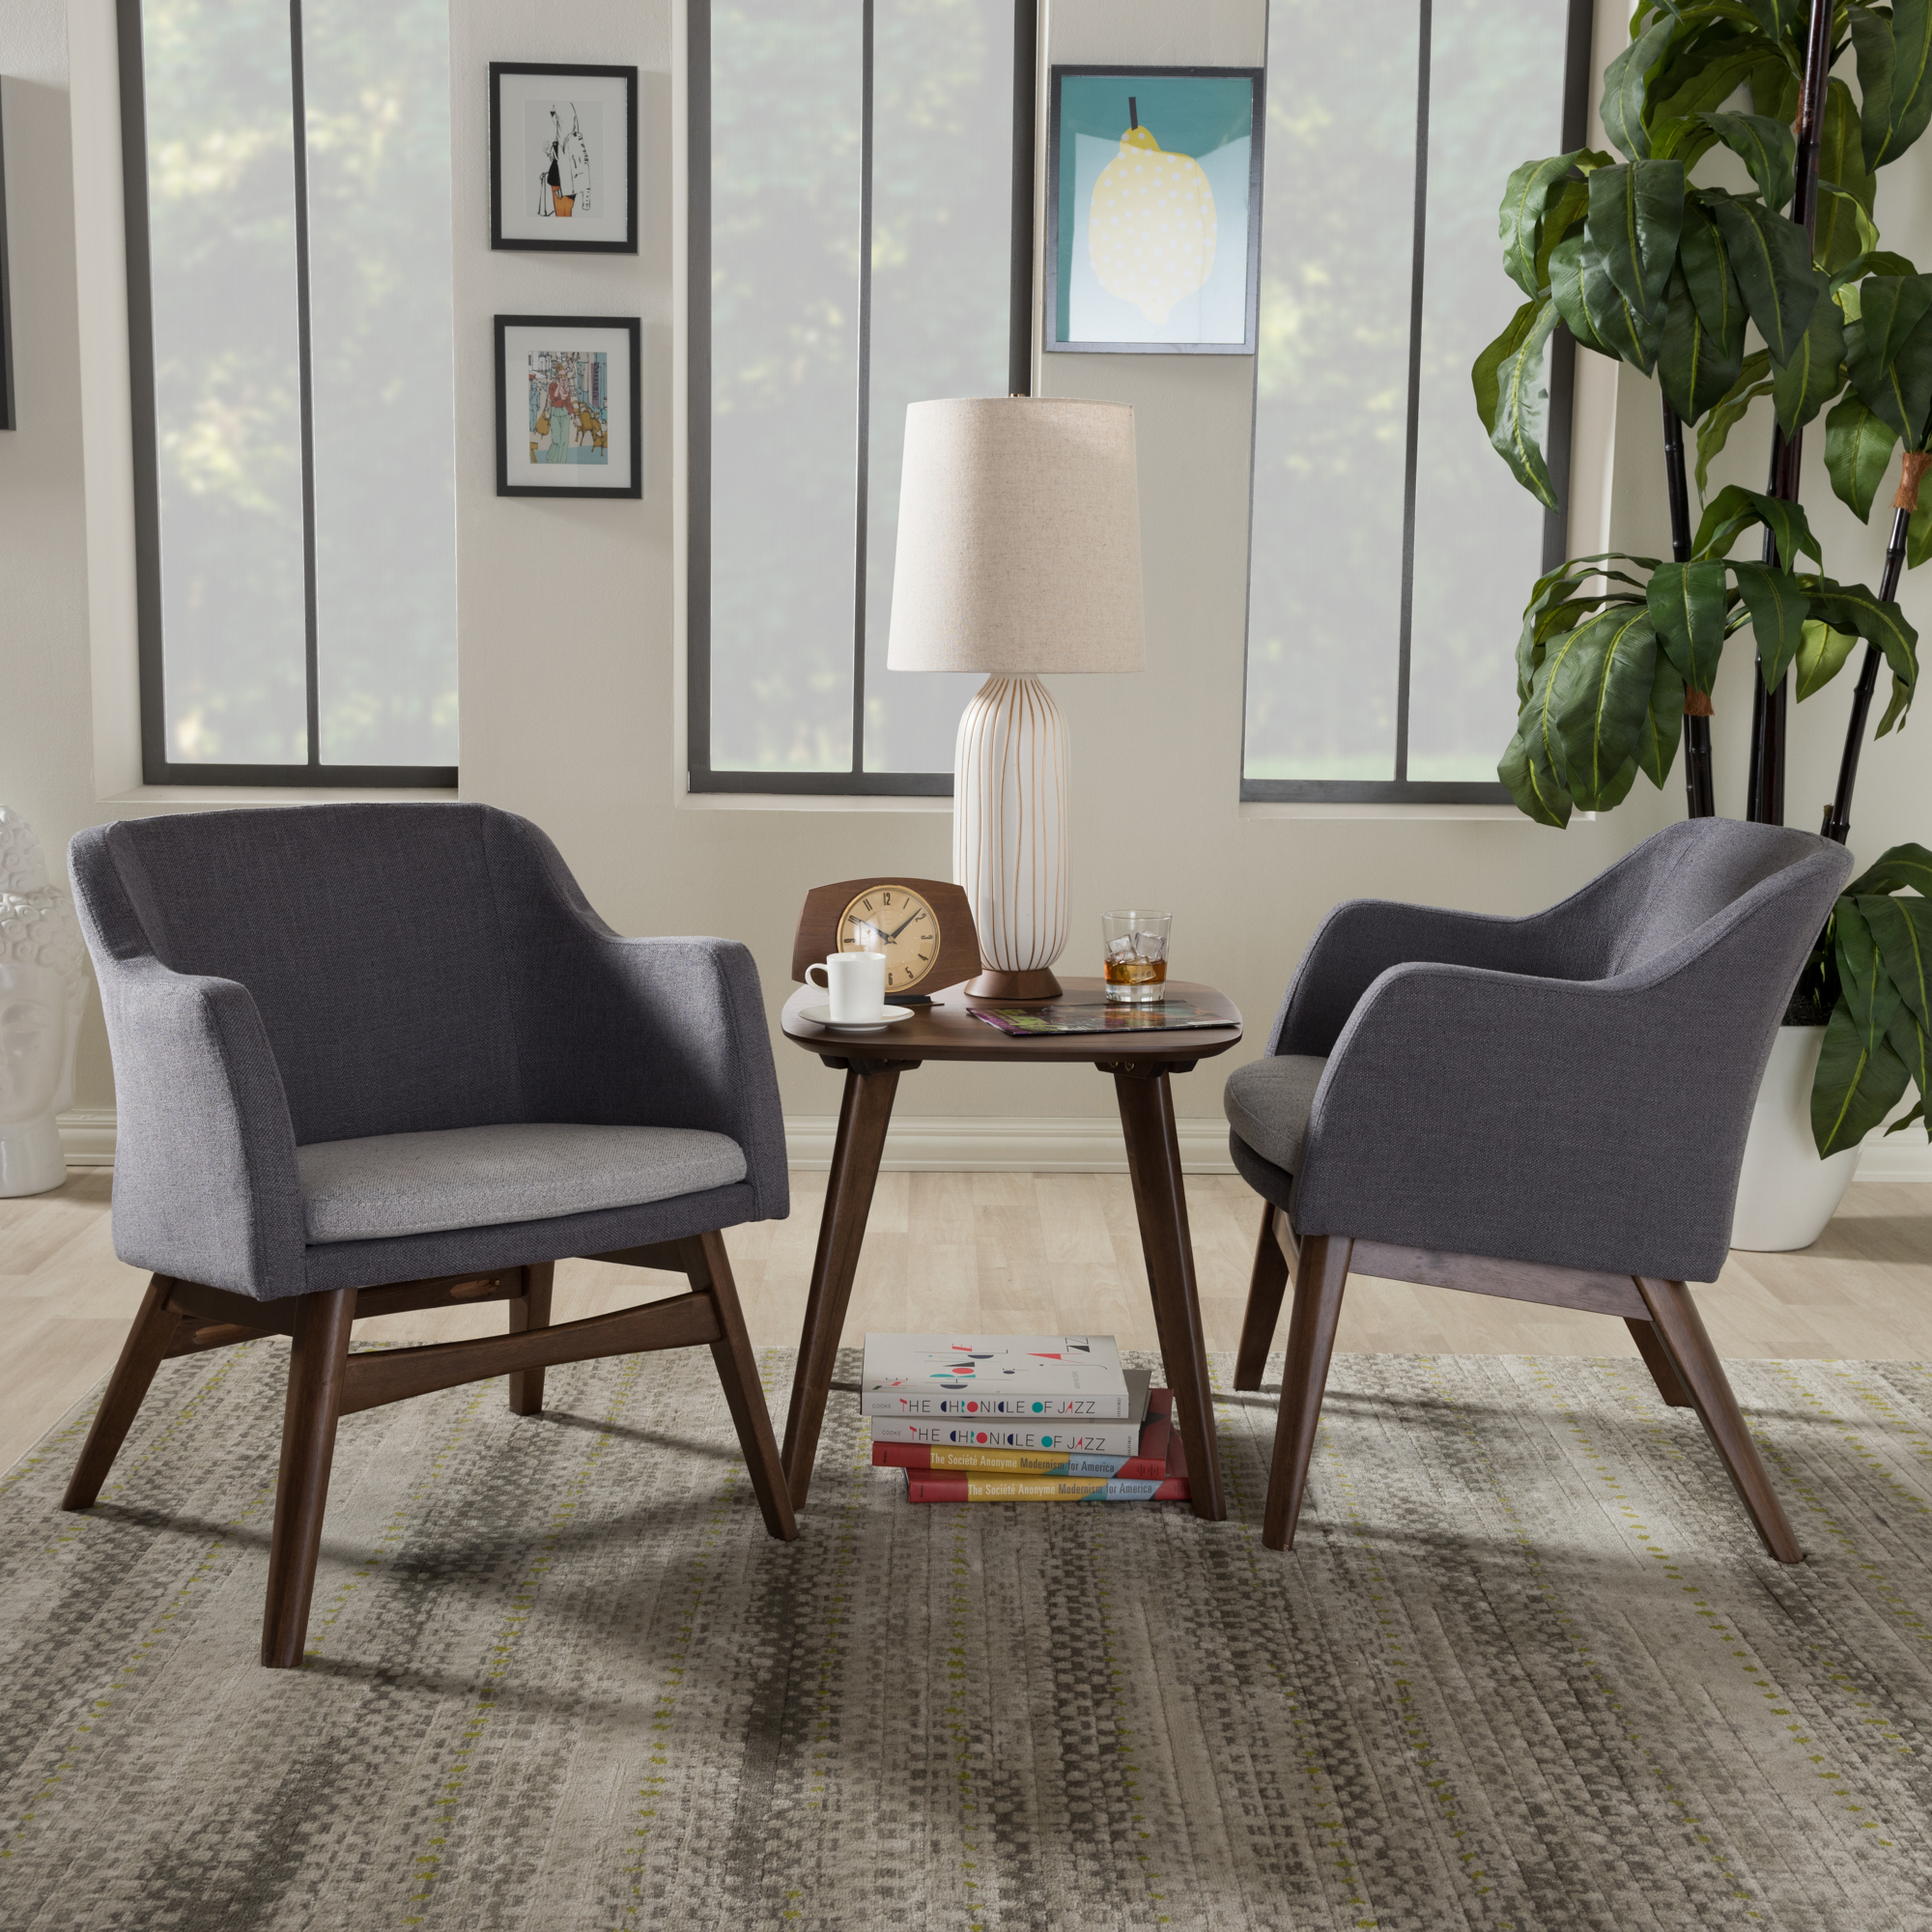 ... Baxton Studio Vera Mid Century Modern 3 Piece Lounge Chair And Side  Table Set ...